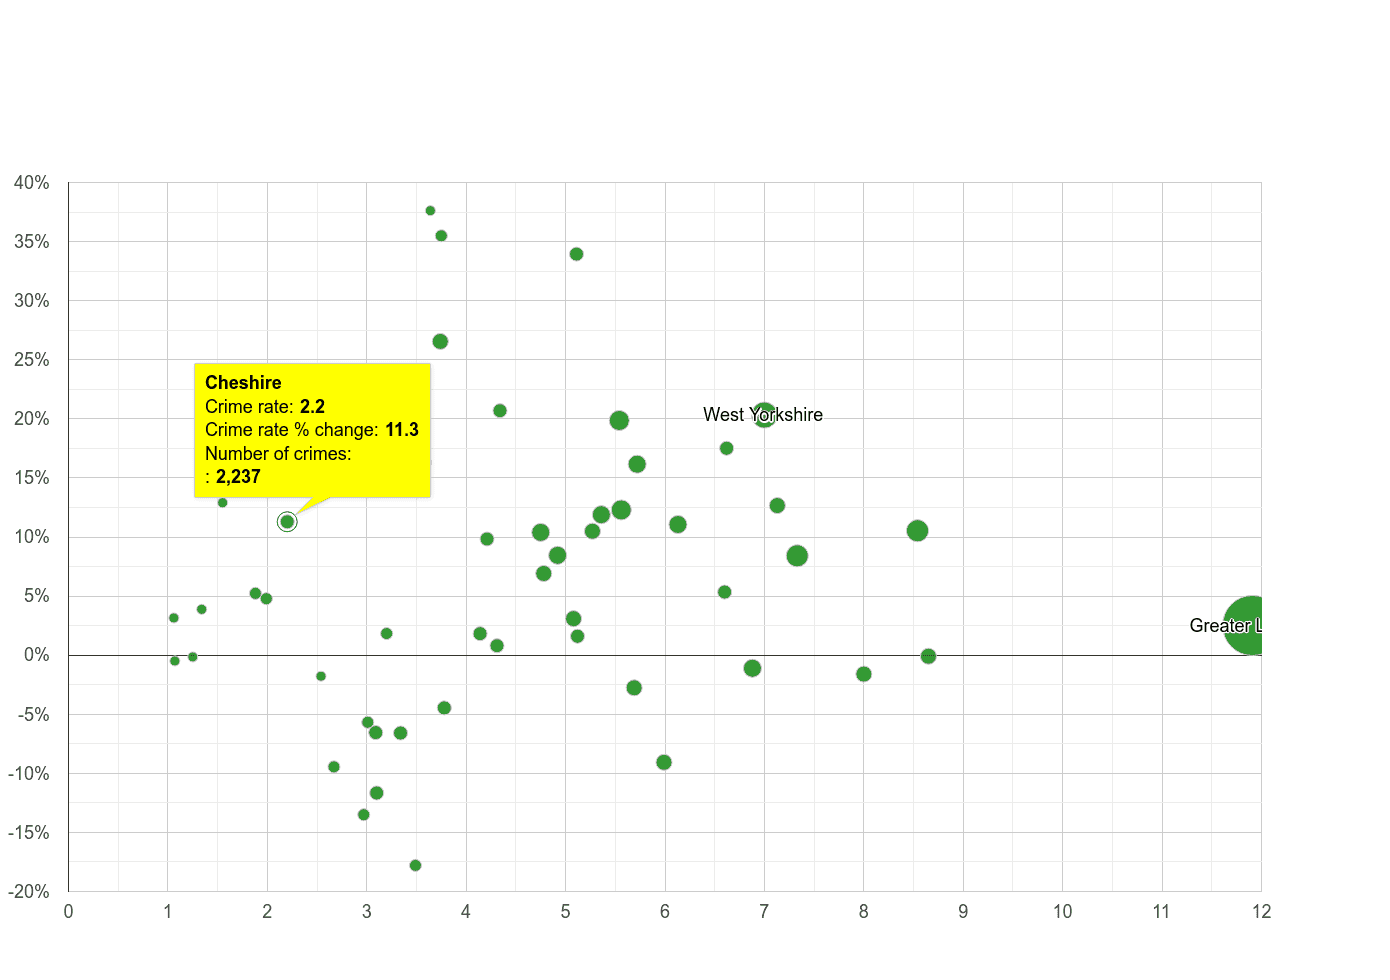 Cheshire vehicle crime rate compared to other counties